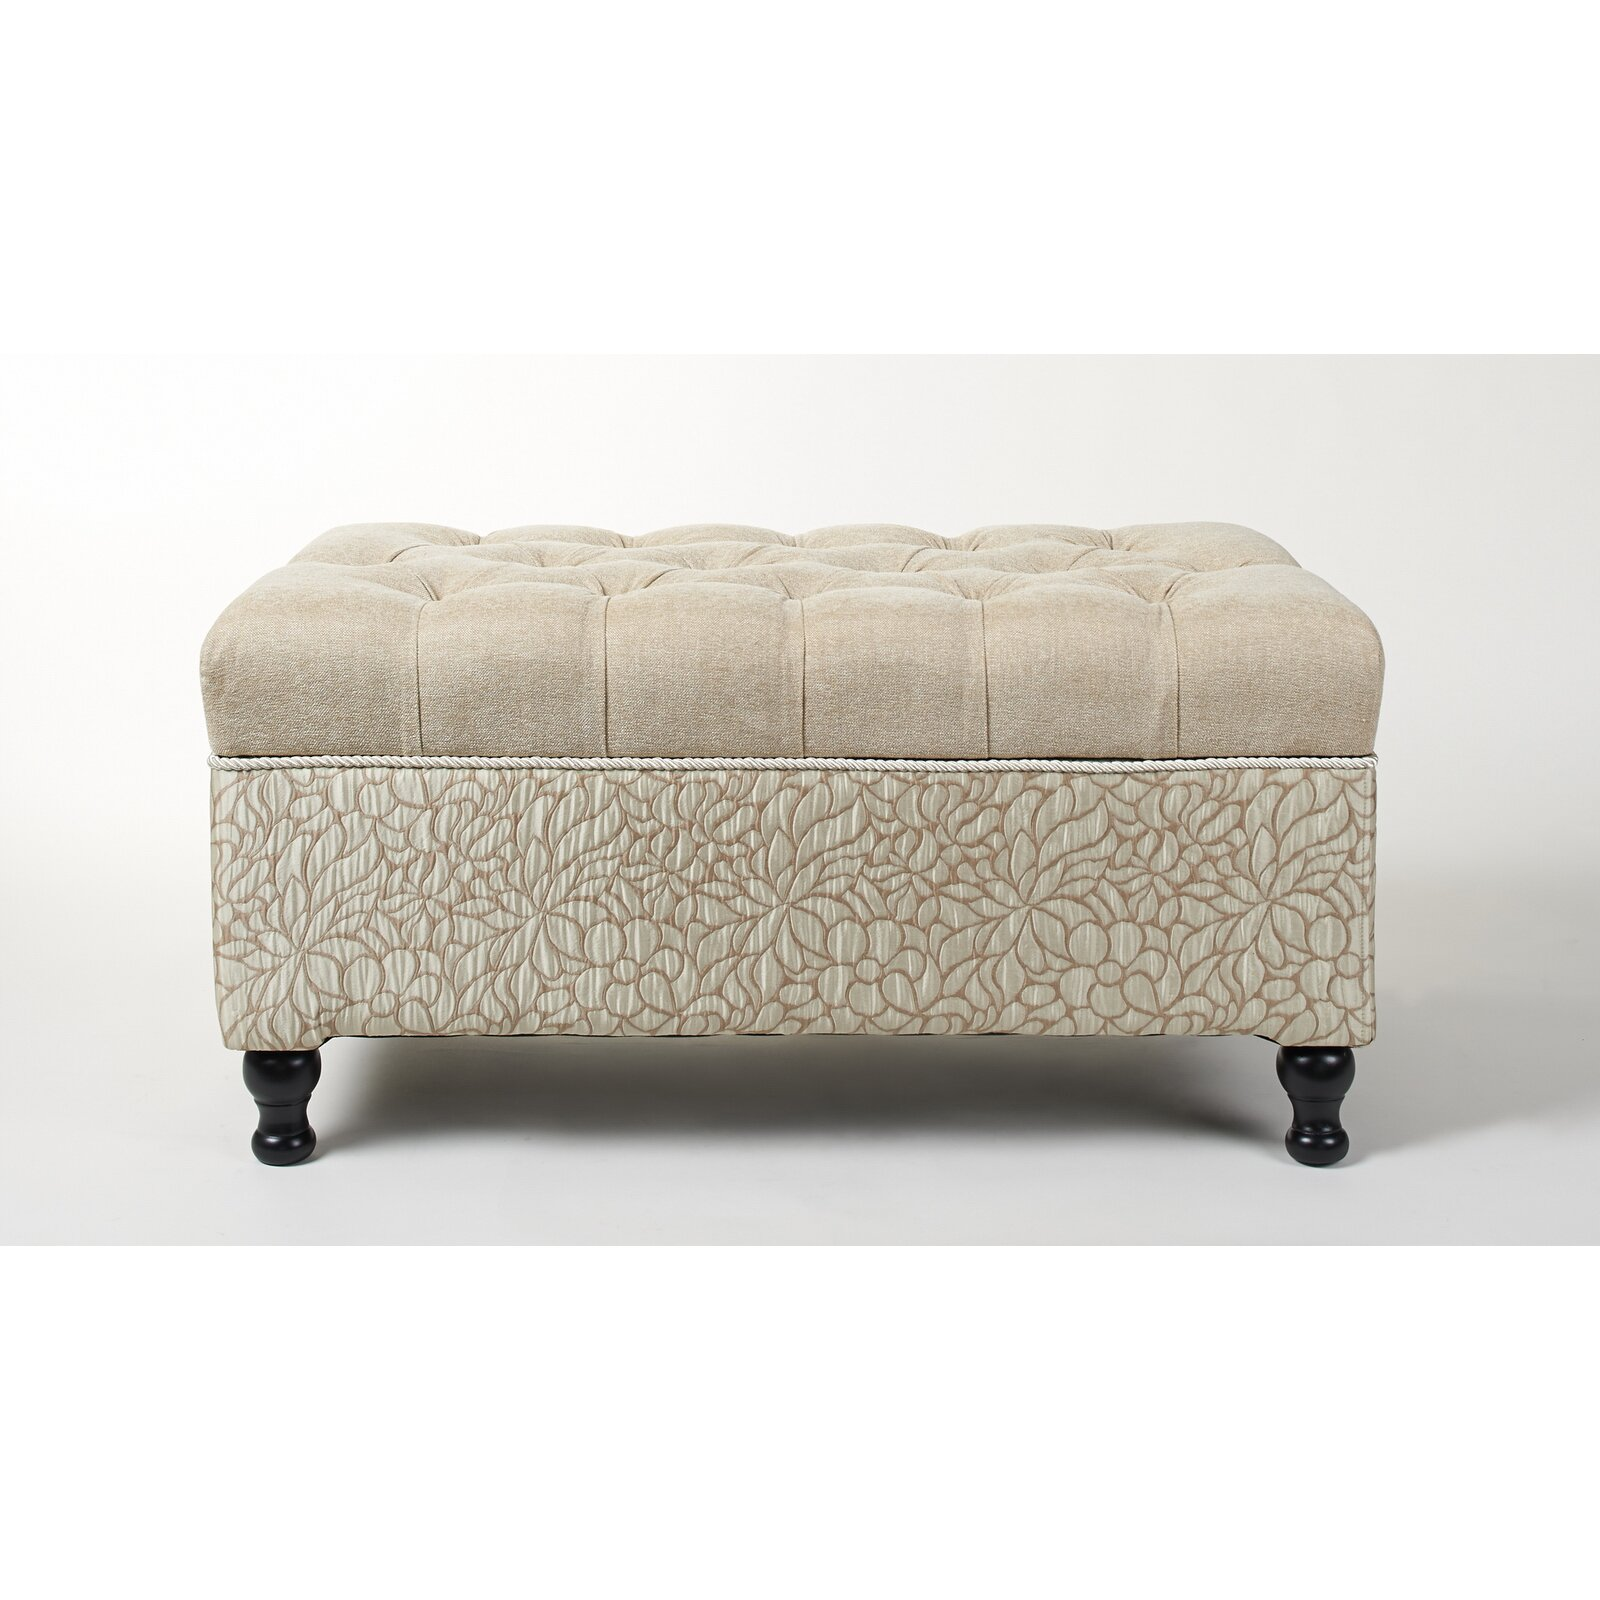 Jennifer taylor naomi upholstered storage bedroom bench for Bedroom upholstered bench